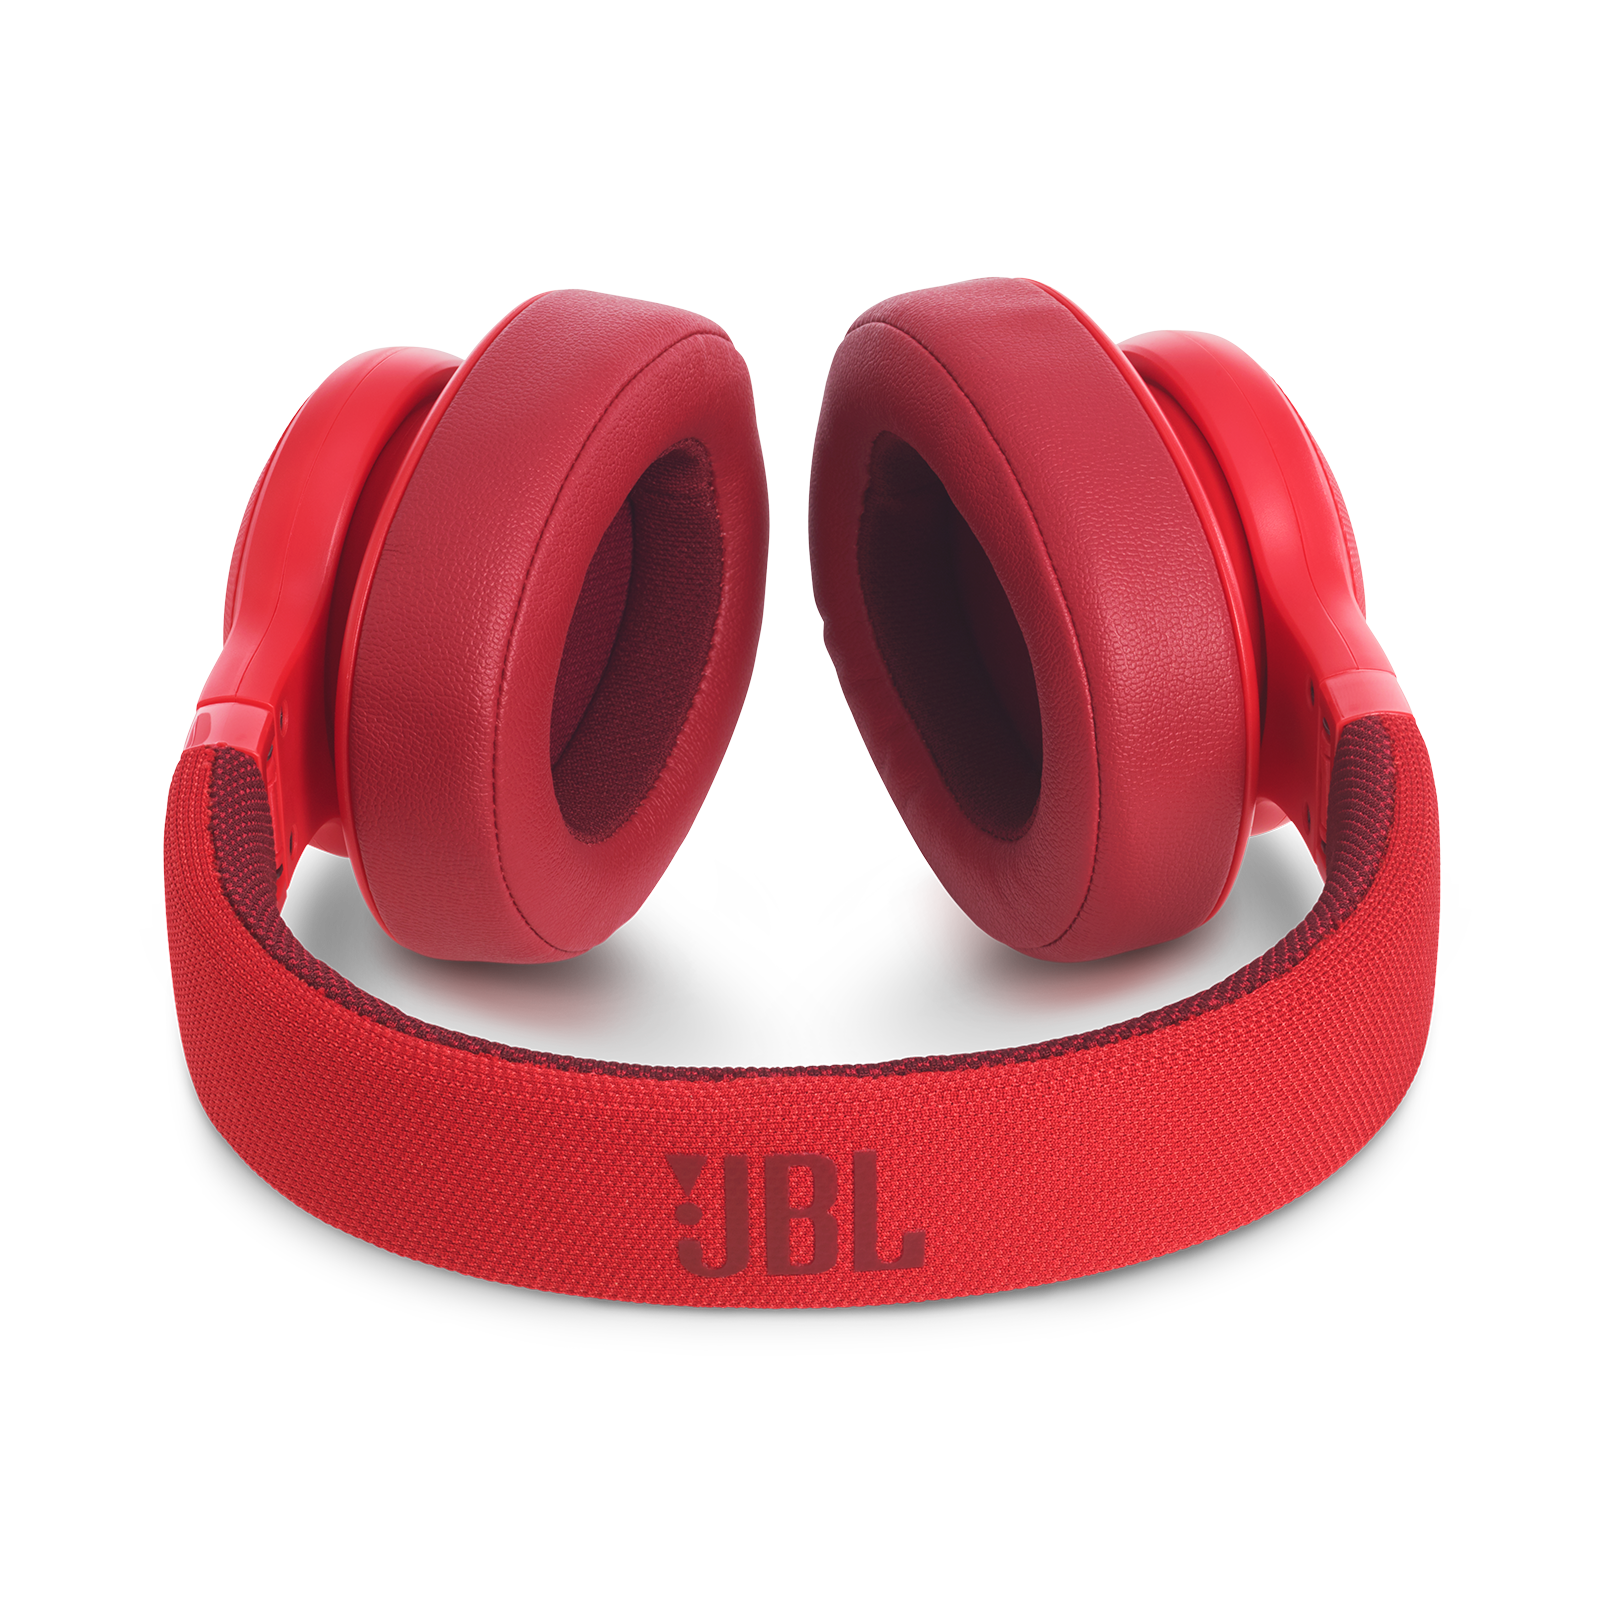 JBL E55BT - Red - Wireless over-ear headphones - Detailshot 3